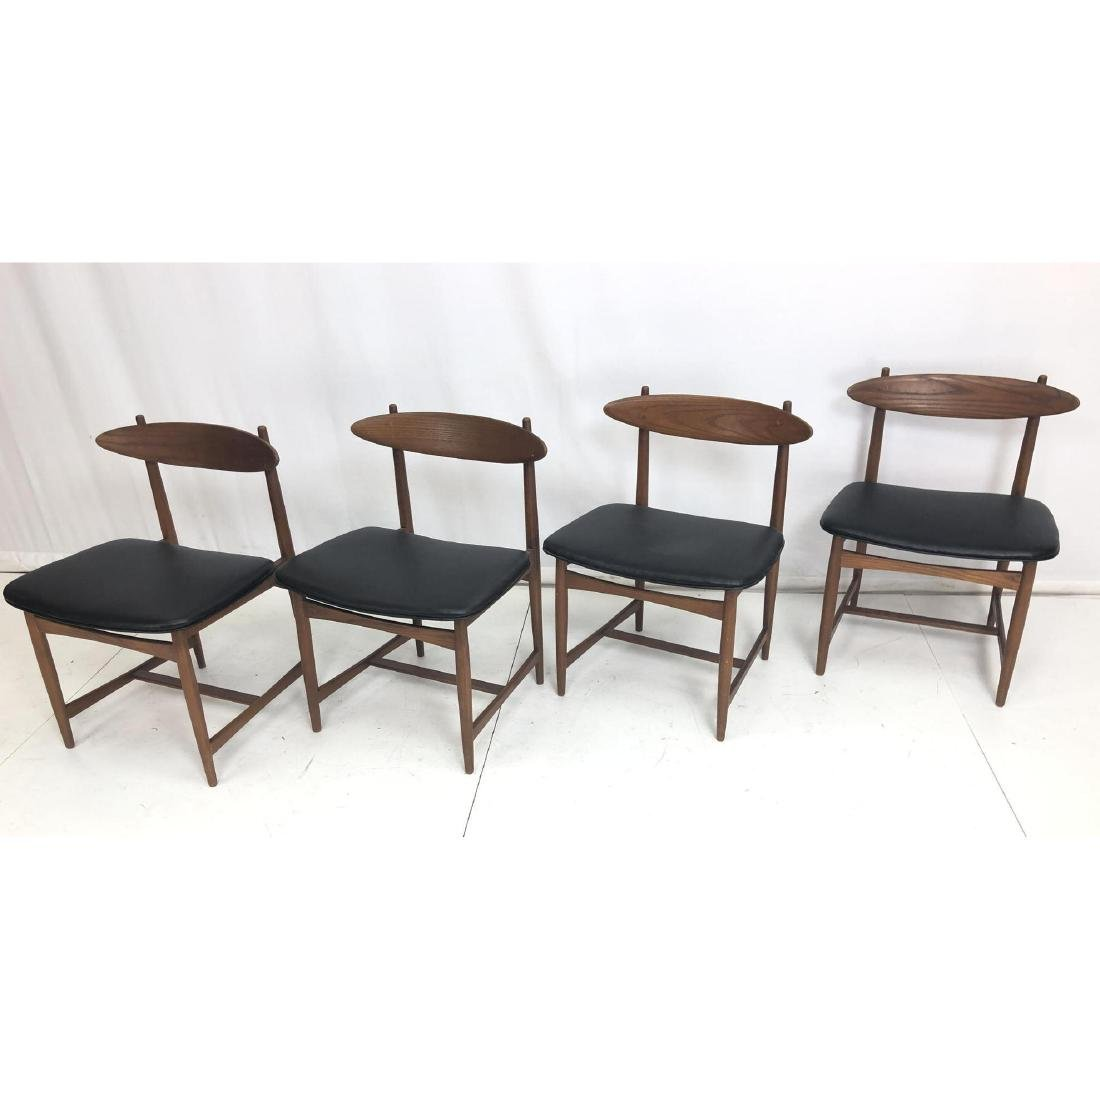 Set 4 Danish Teak Modern Dining Side Chairs. Floa